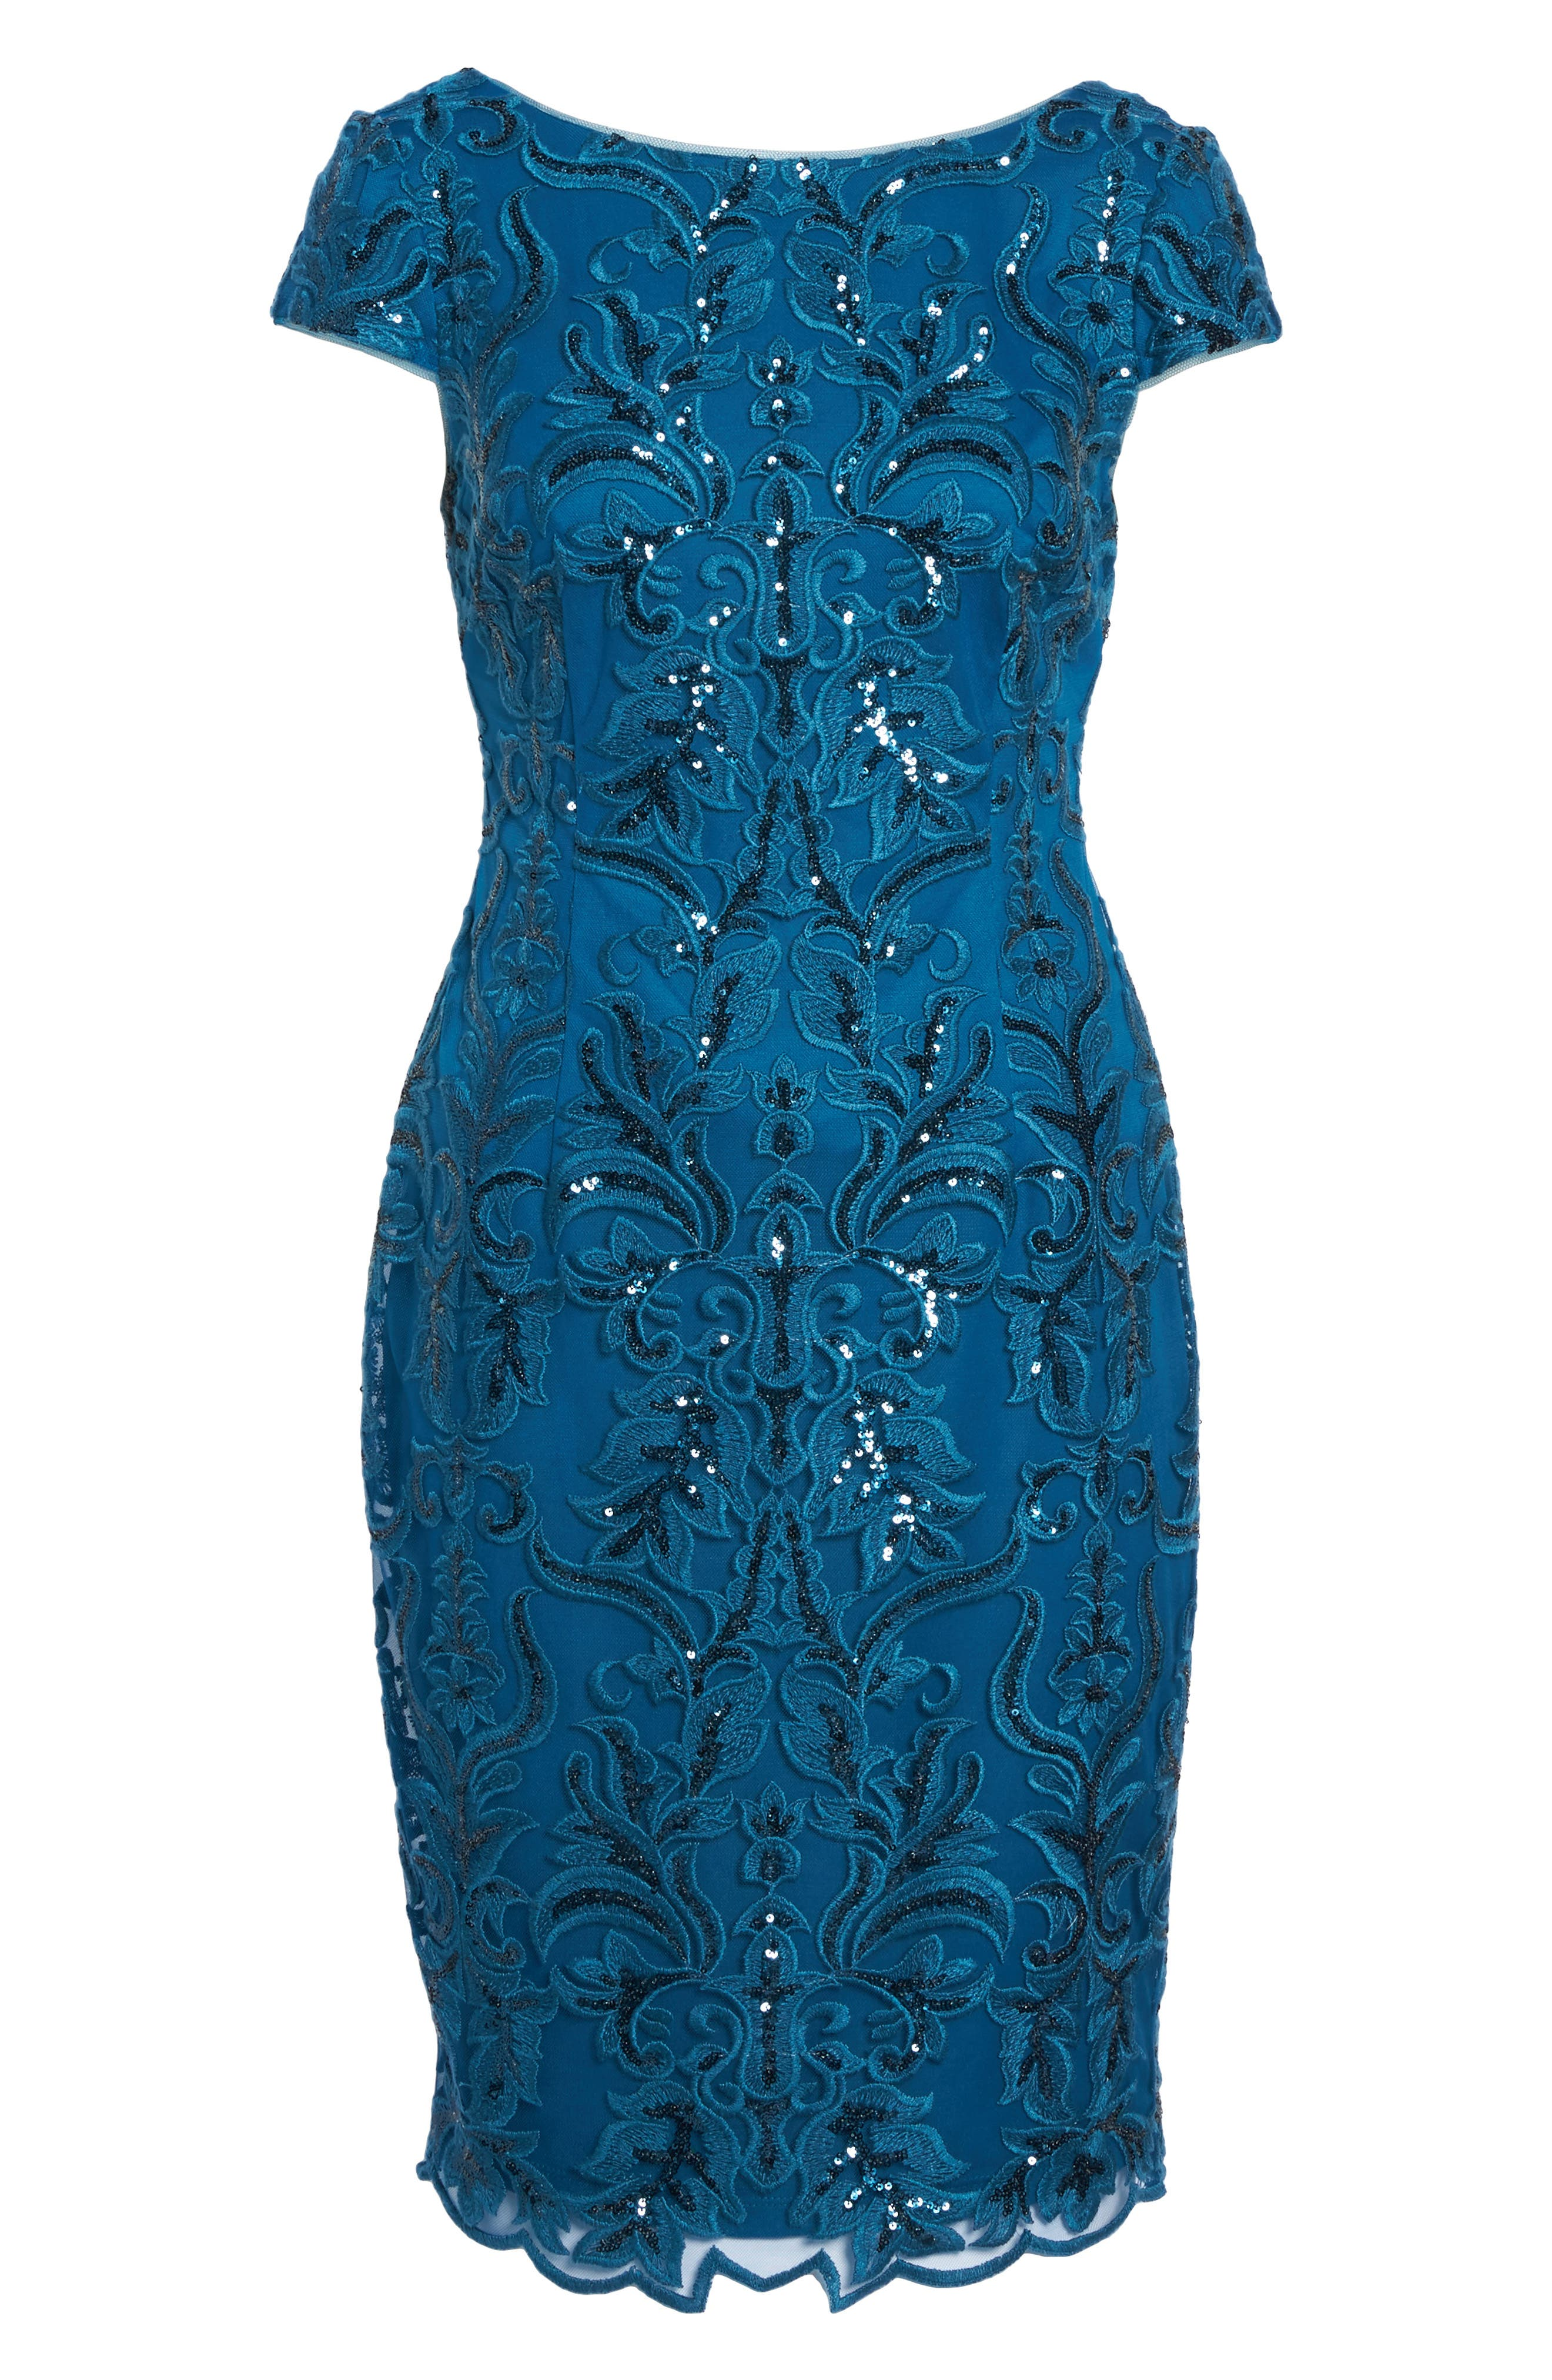 Sequin Embroidered Sheath Dress,                             Alternate thumbnail 6, color,                             Evening Sky